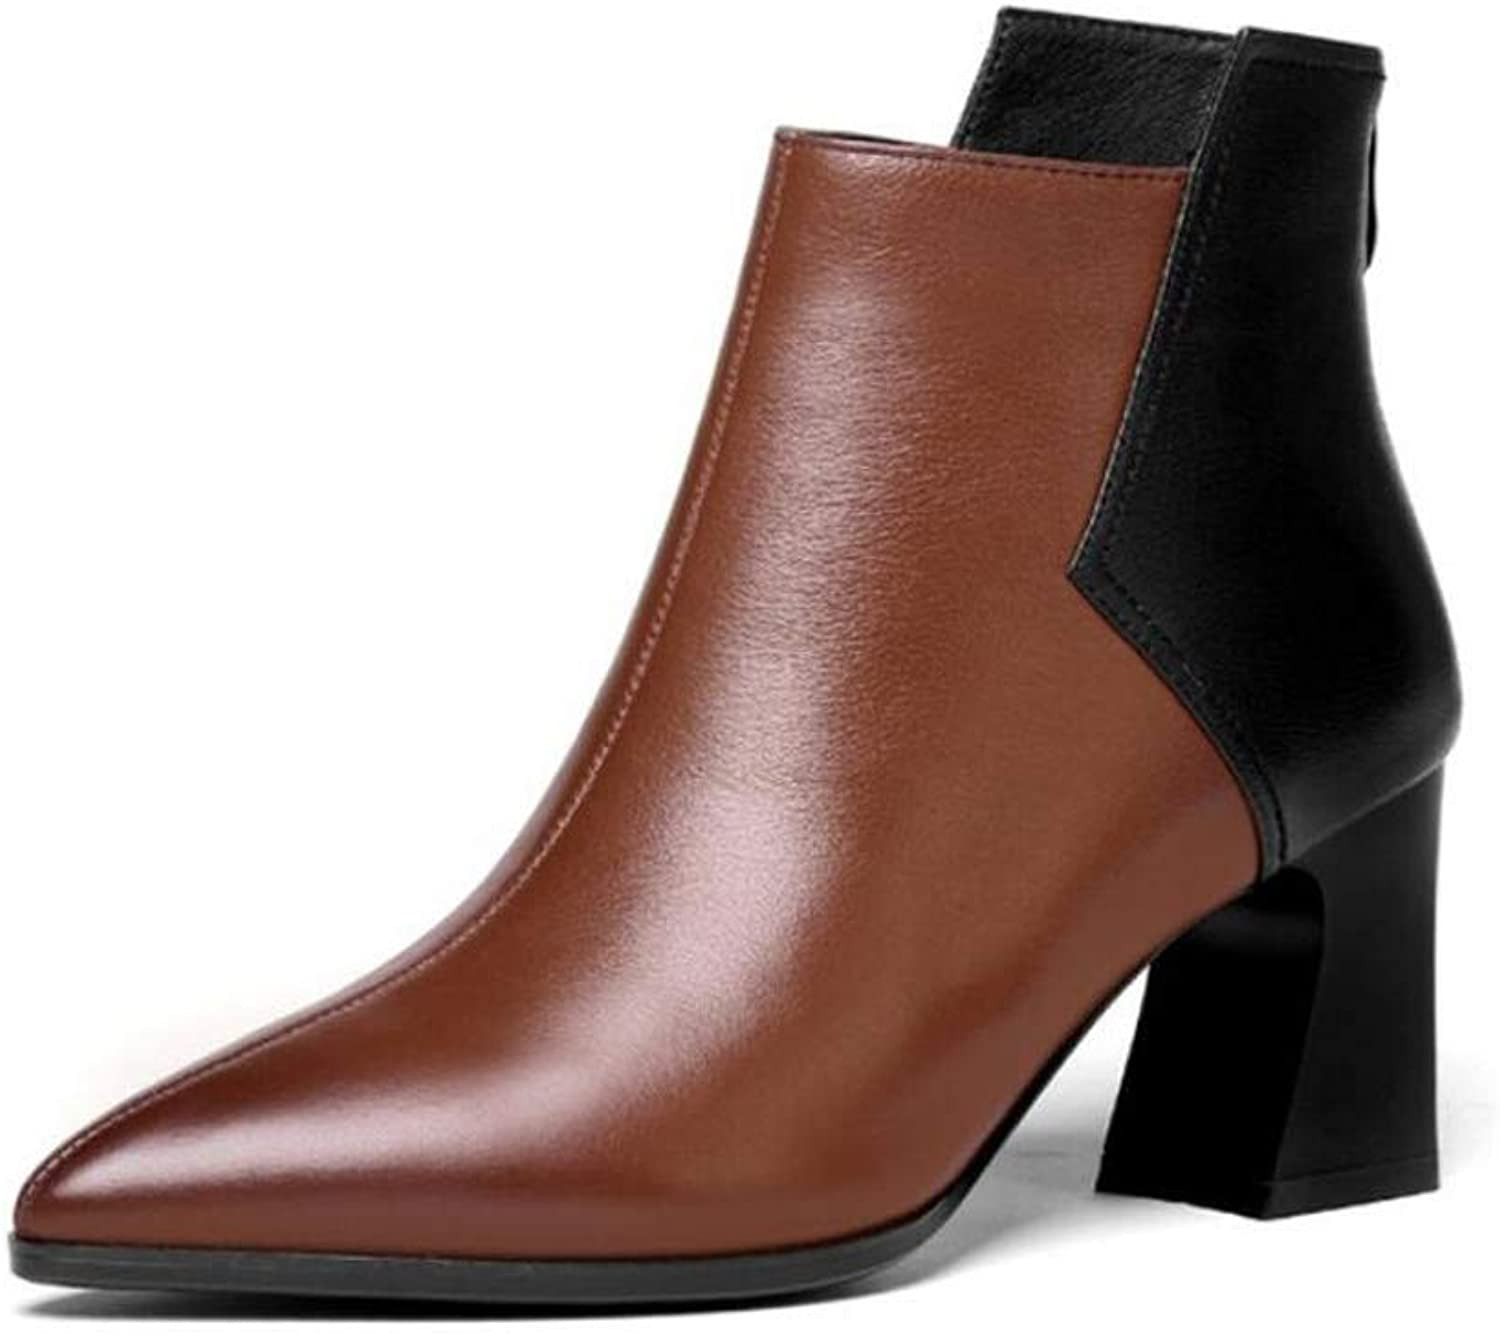 Womens Leather Ankle Boots Winter Snow Flat Chelsea Boots Biker Casual Booties shoes Ladies Comfortable Anti-Slip Martin Boots